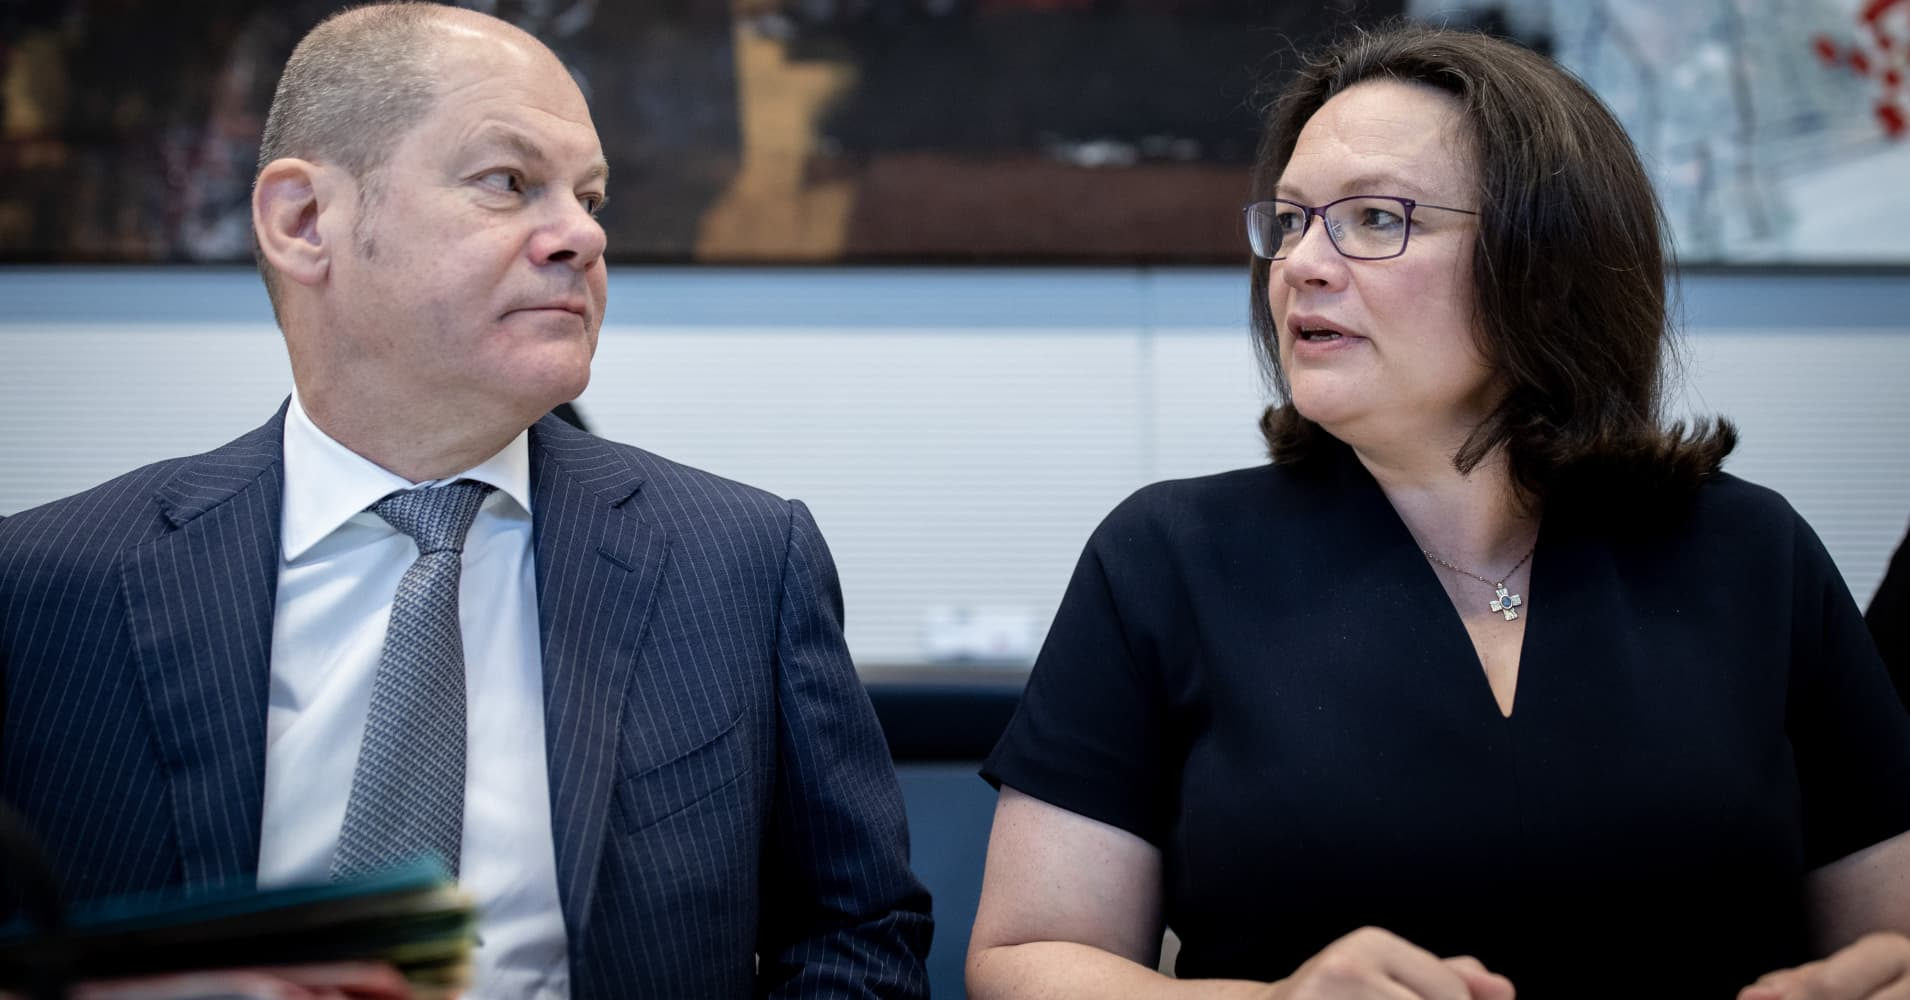 German Finance Minister Olaf Scholz of the Social Democratic Party (SPD) and SPD Faction Leader Andrea Nahles attend a session of the SPD's Bundestag faction on the topic of recent developments in the asylum debate.